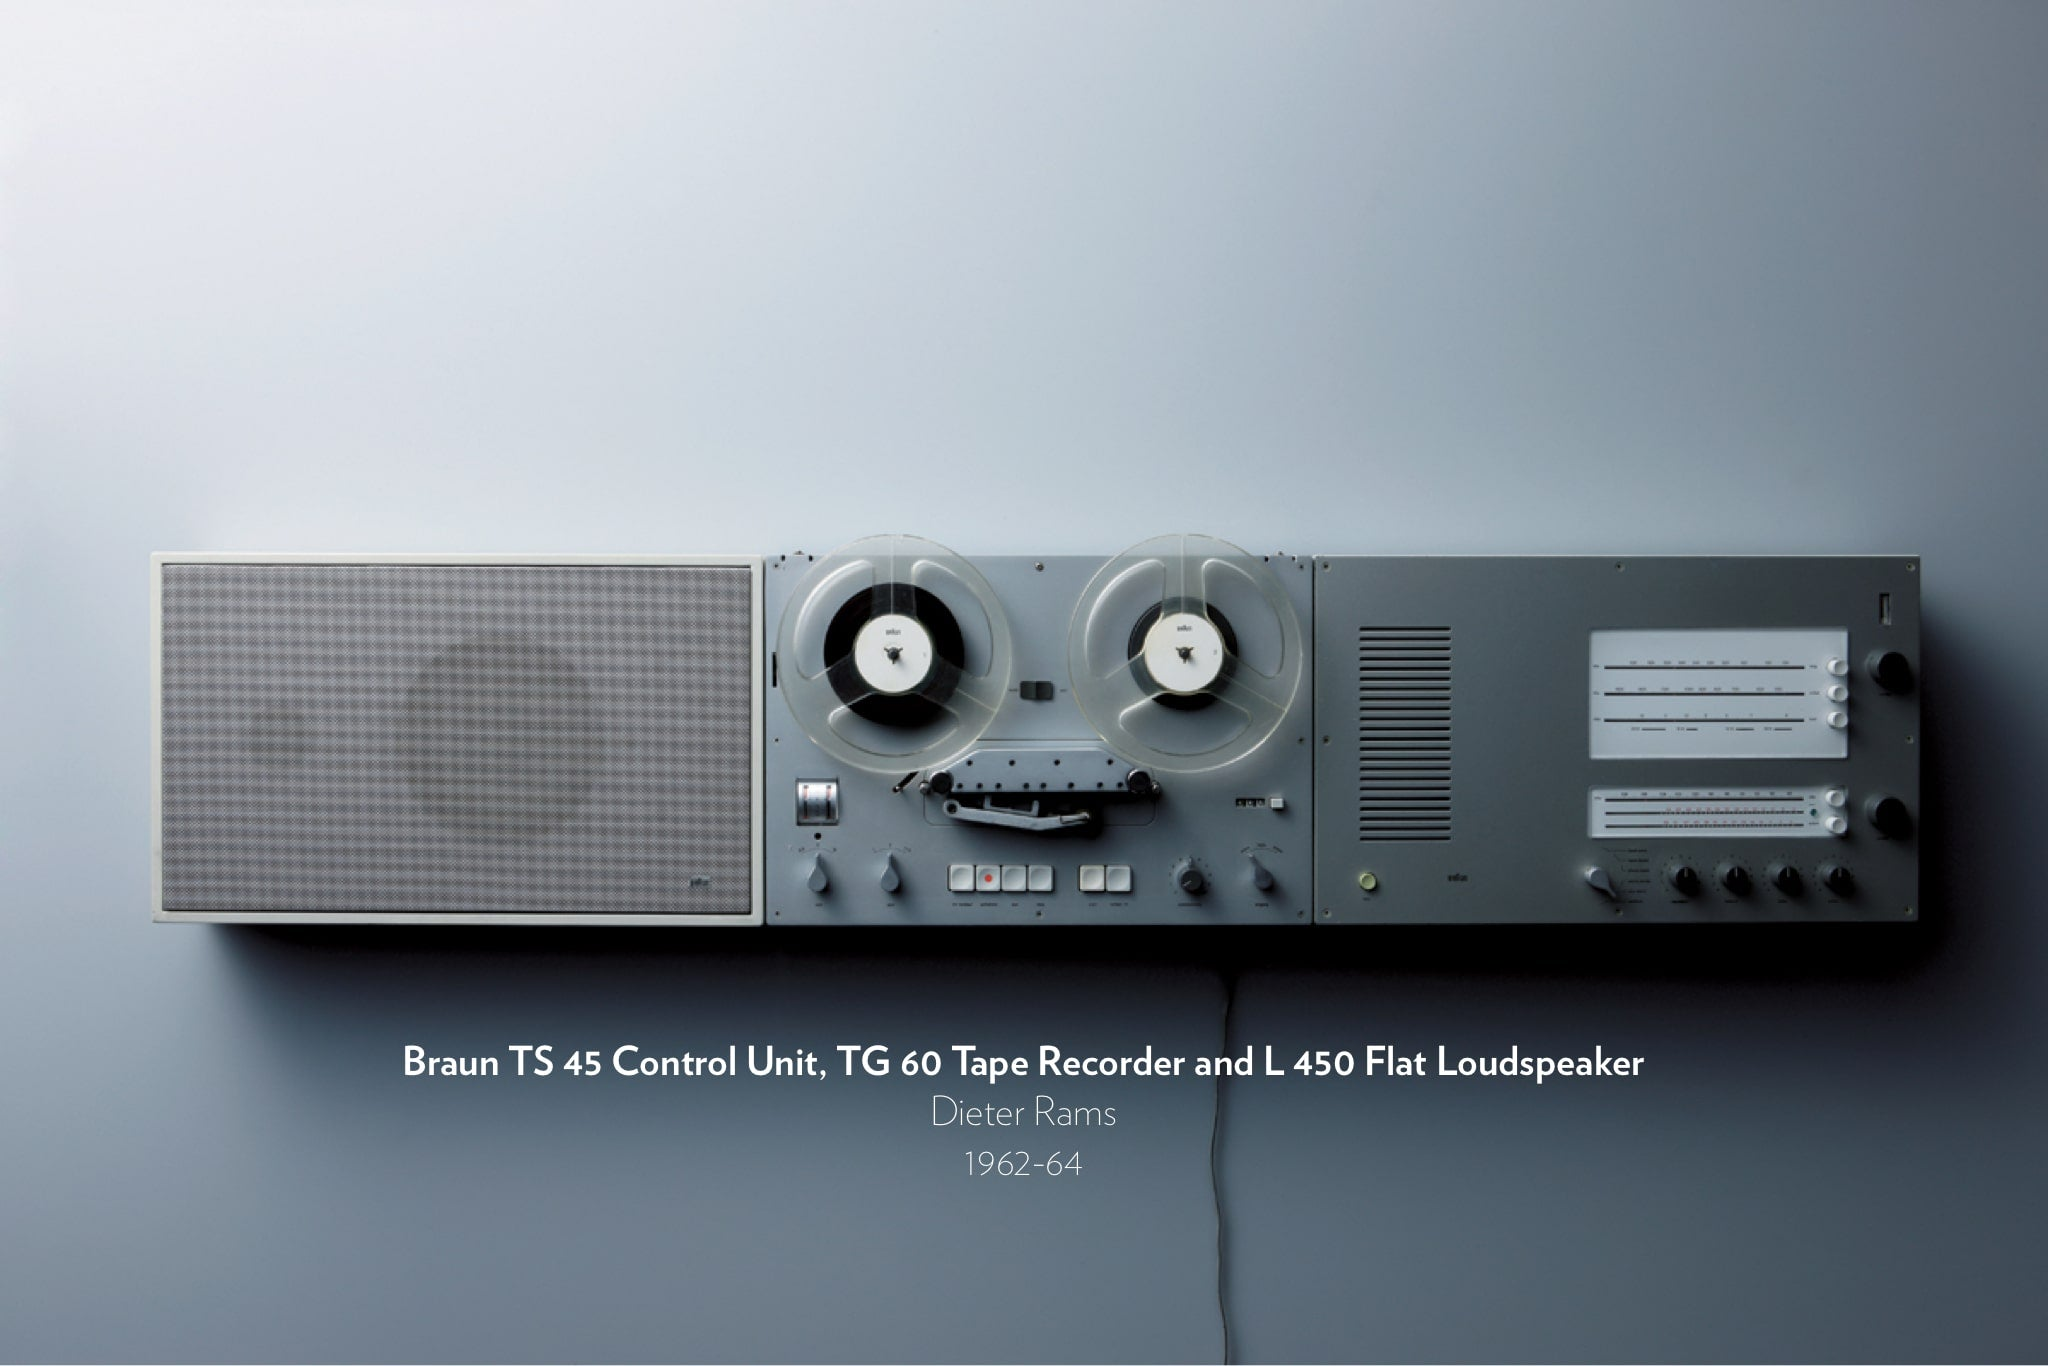 Braun TS 45 Control Unit, TG 60 Tape Recorder and L 450 Flat Loudspeaker designed by Dieter Rams from 1962 to 1964.